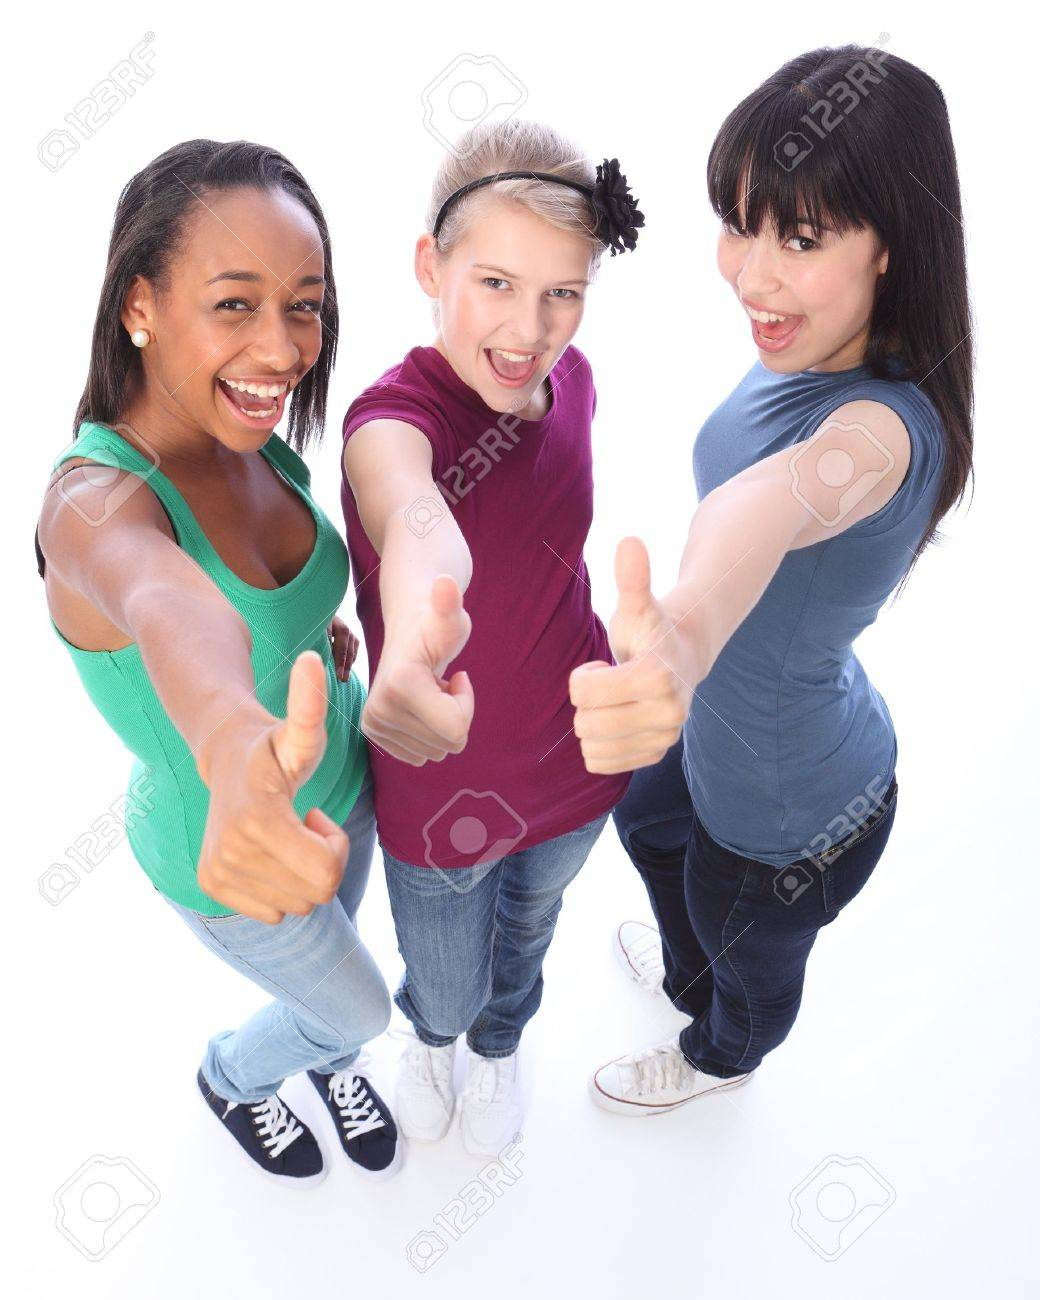 Excited thumbs up in success by three multi cultural teenage school student friends made up of mixed race african american, oriental Japanese and caucasian all happy holding hands out to camera. Stock Photo - 10782760